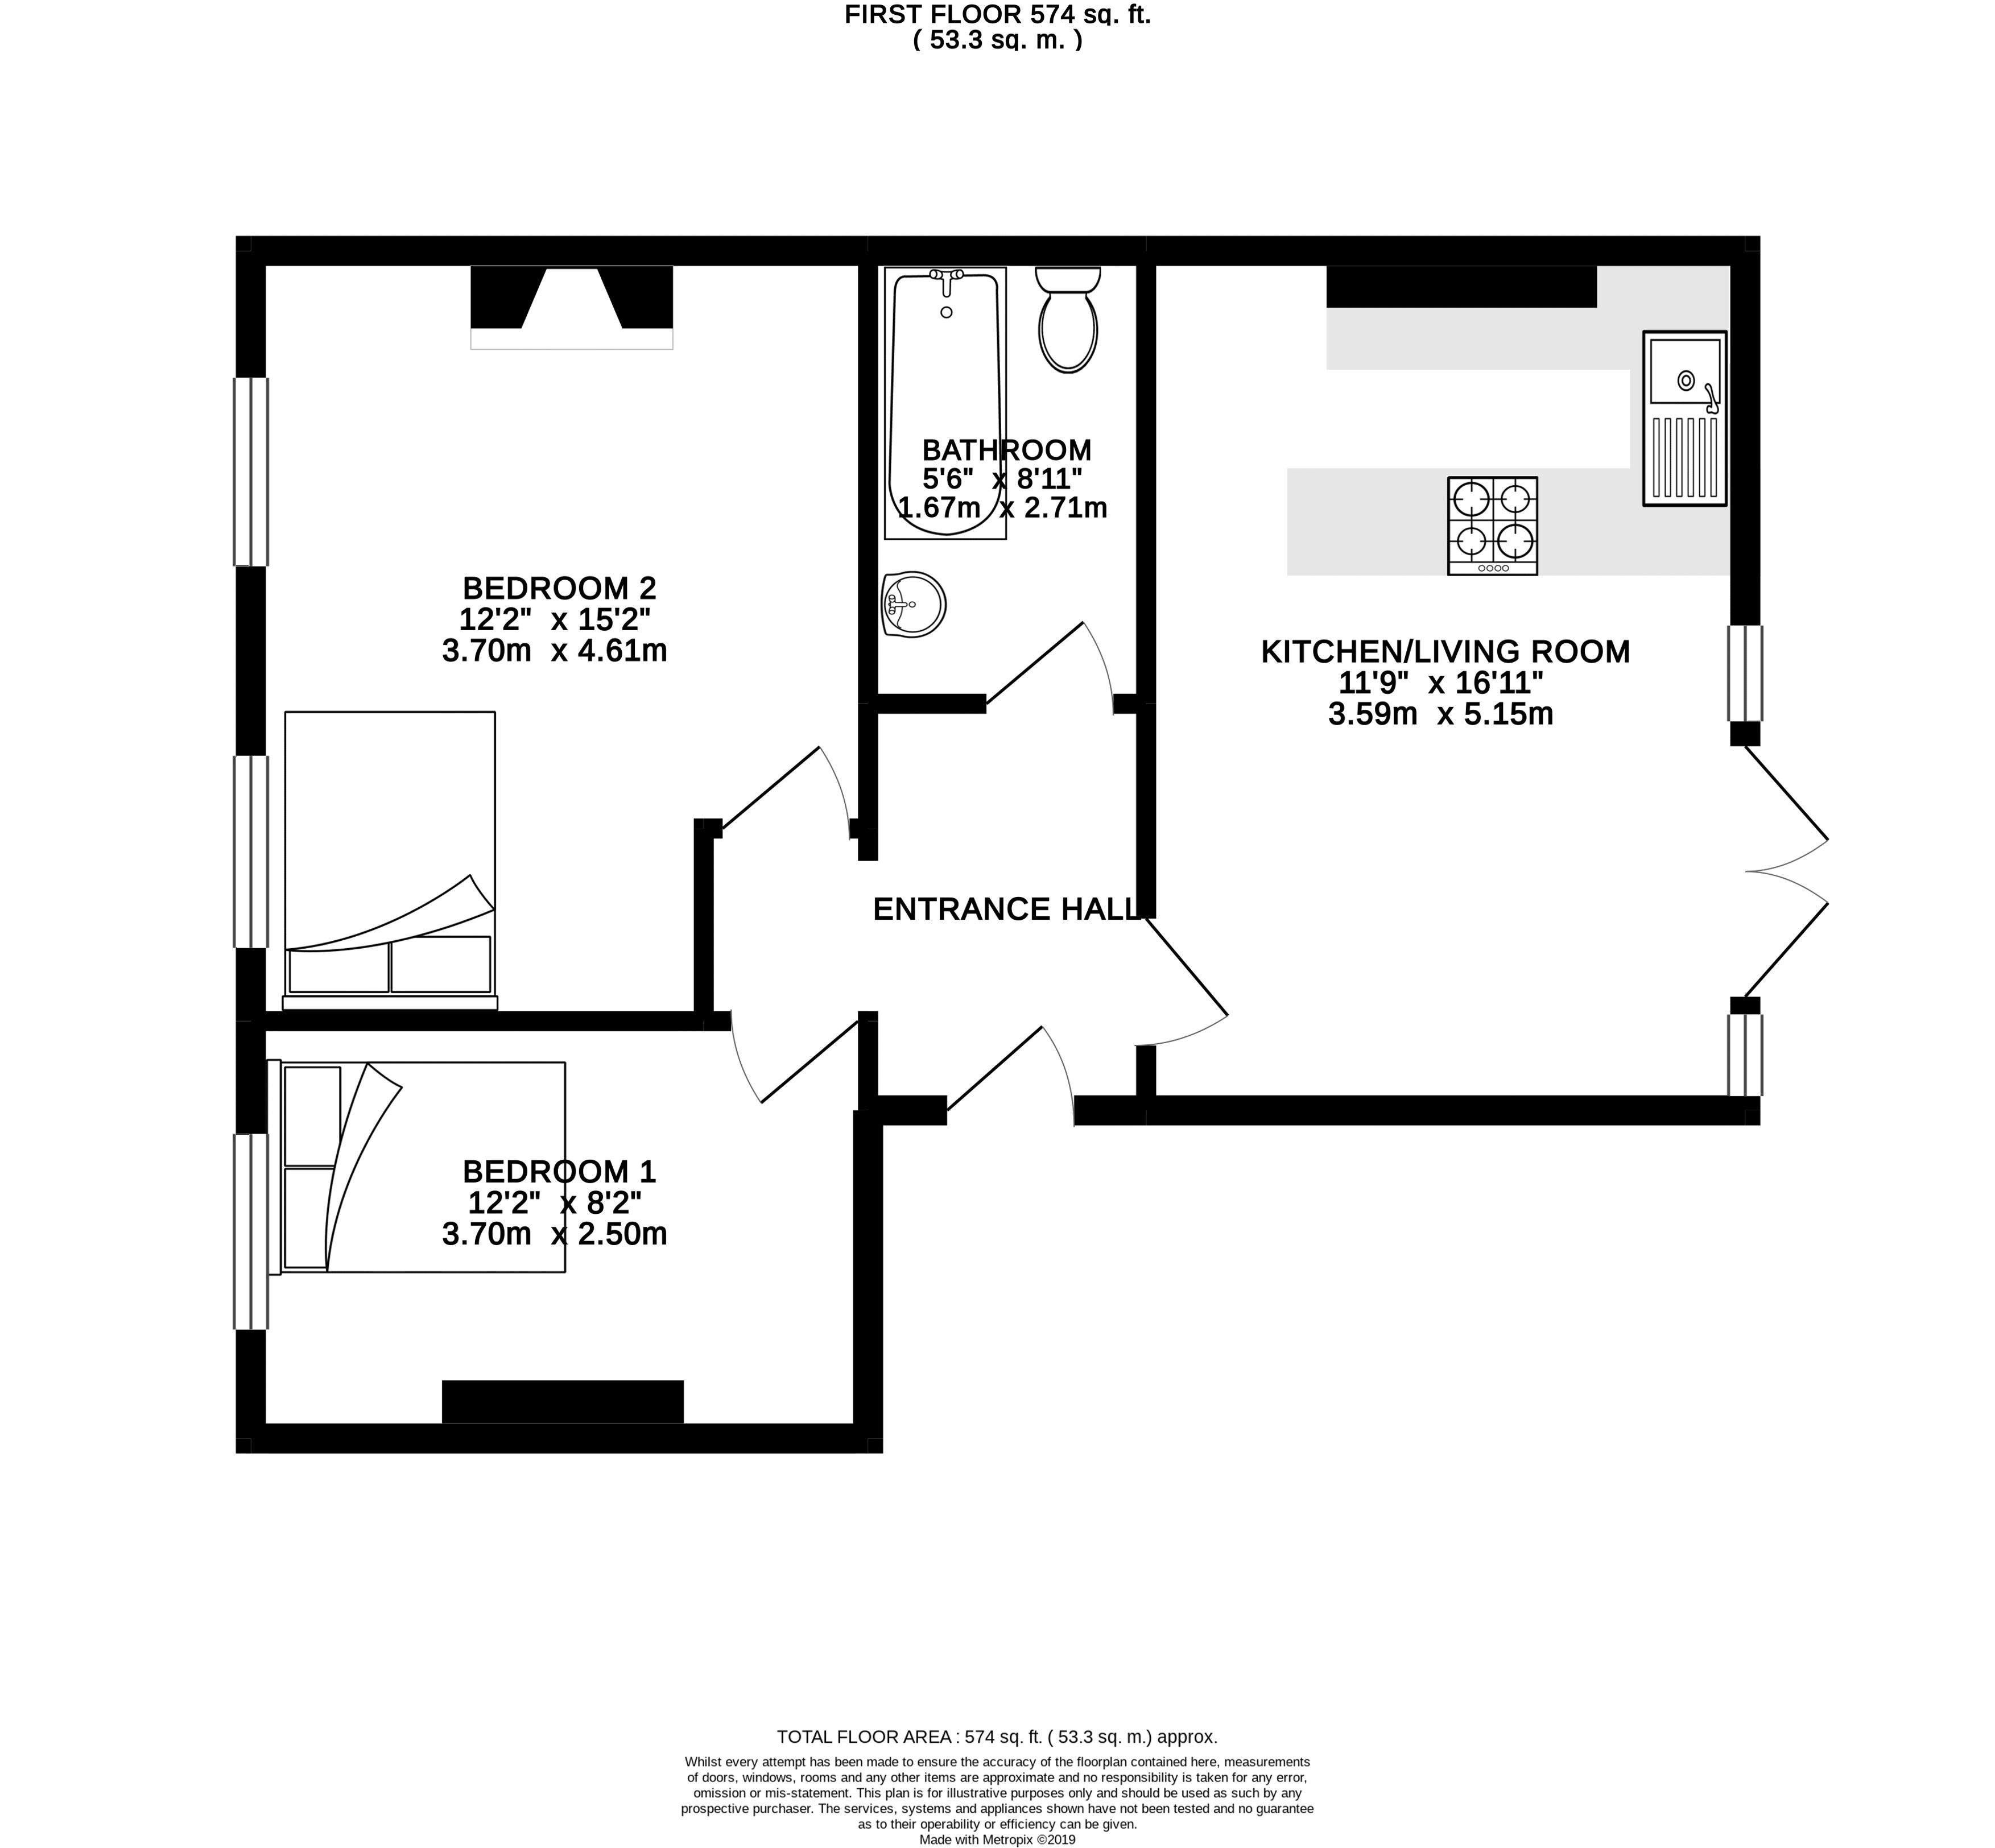 Floor plans for London Road, Brighton property for sale in London Road, Brighton by Coapt